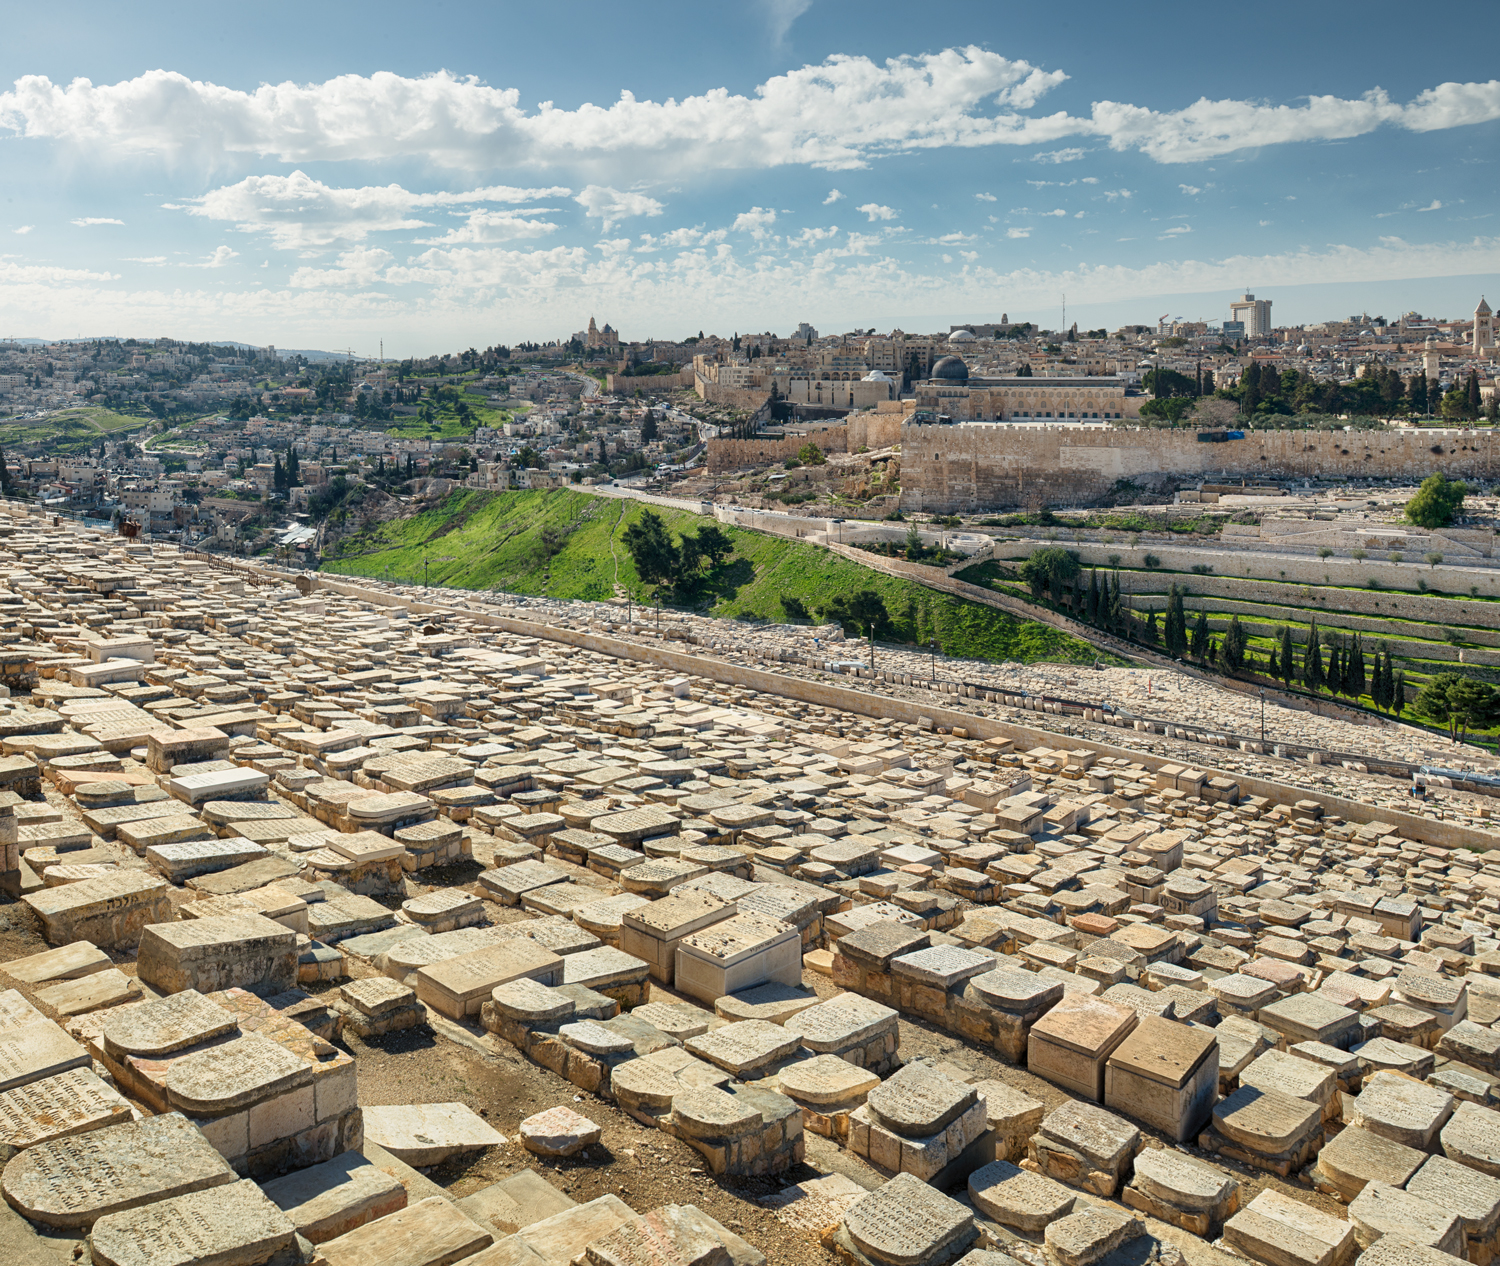 A Jewish Cemetery that stretched as far as the eye could see it seemed. Looking west you see the Old City of Jerusalem.